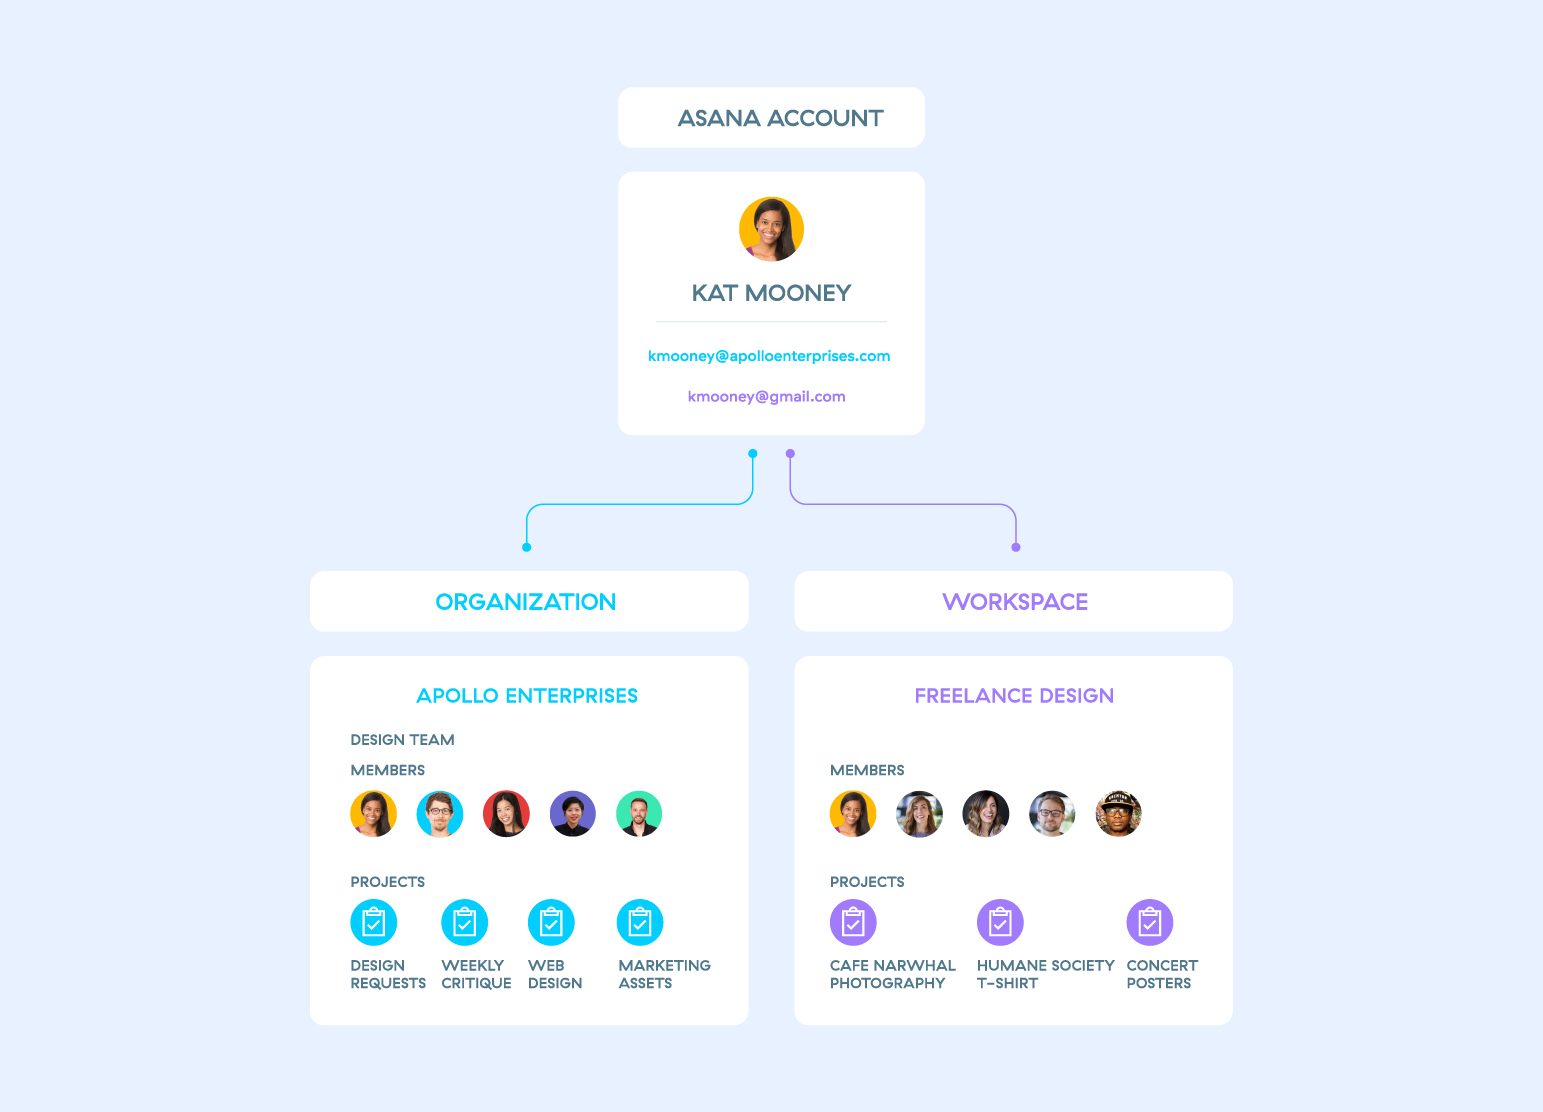 Your Asana account is tied to your email address. You can create and join Asana Organizations and Workspaces to track your work with tasks, projects, and conversations